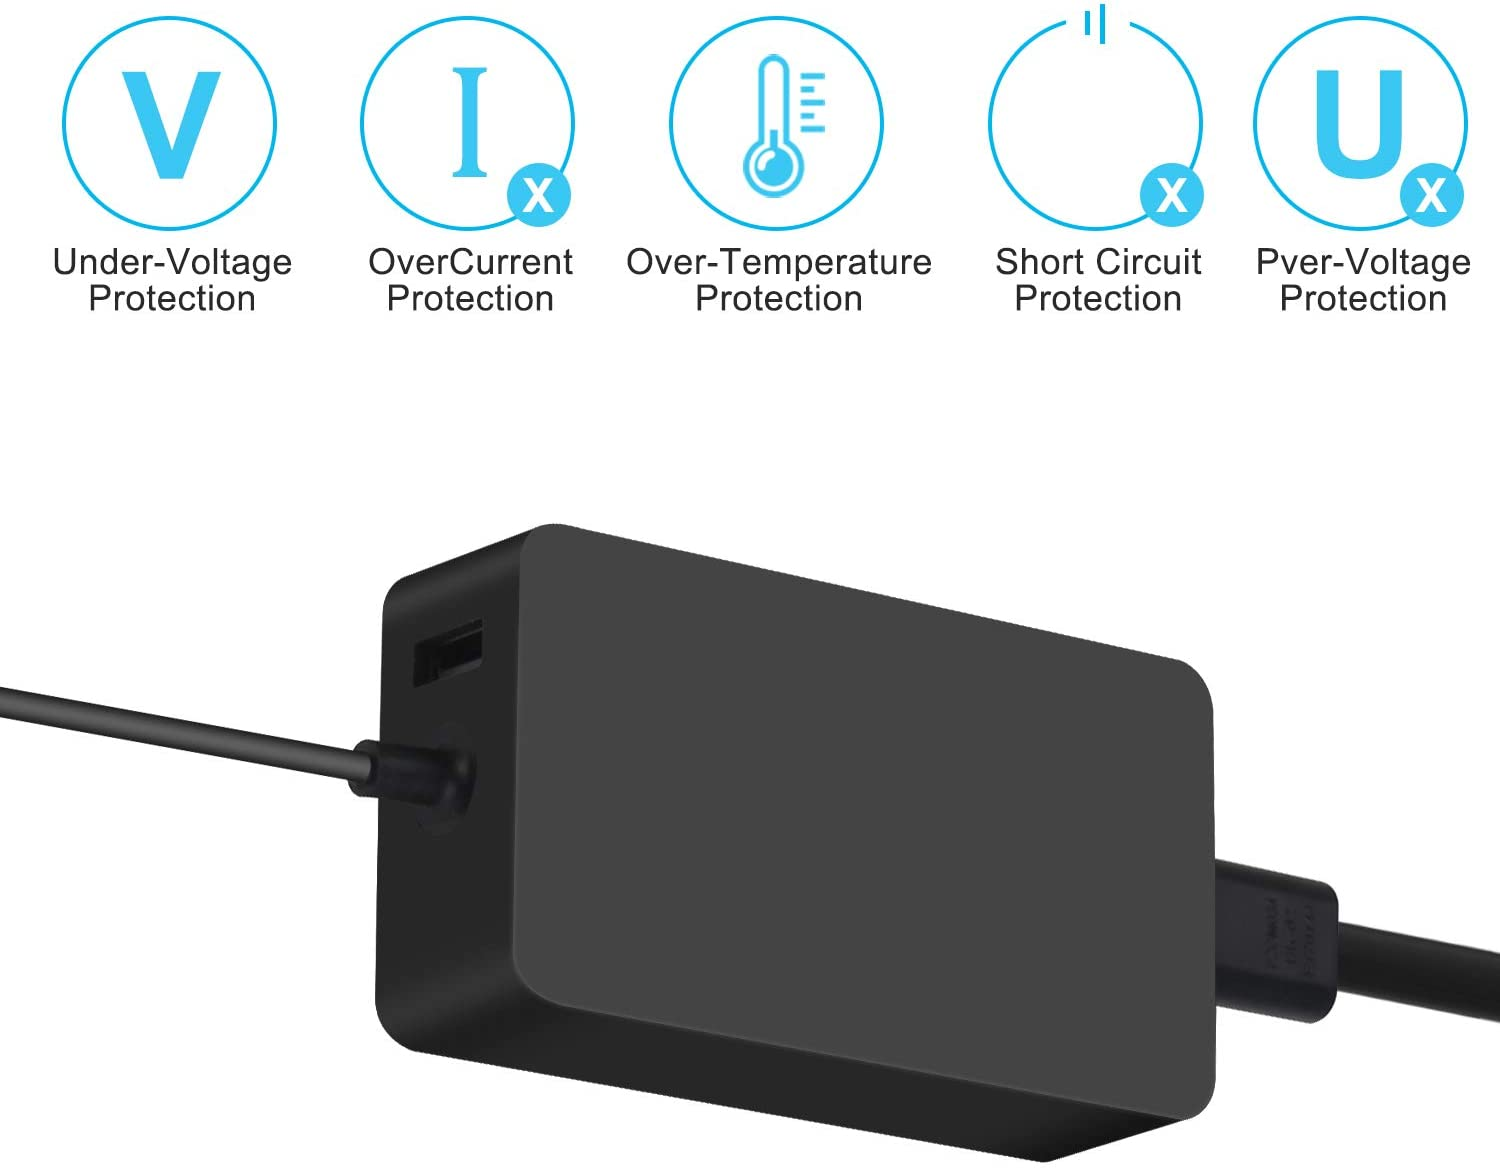 Surface Go 2 1 fit Model 1706 1800 1625 Charger 65W Surface Pro 7 Pro 6 Pro 5 Pro 4 Pro 3 Power Supply Charger for Microsoft Surface Book Surface Laptop 3 2 1 Surface Tablet Surface Book Charger